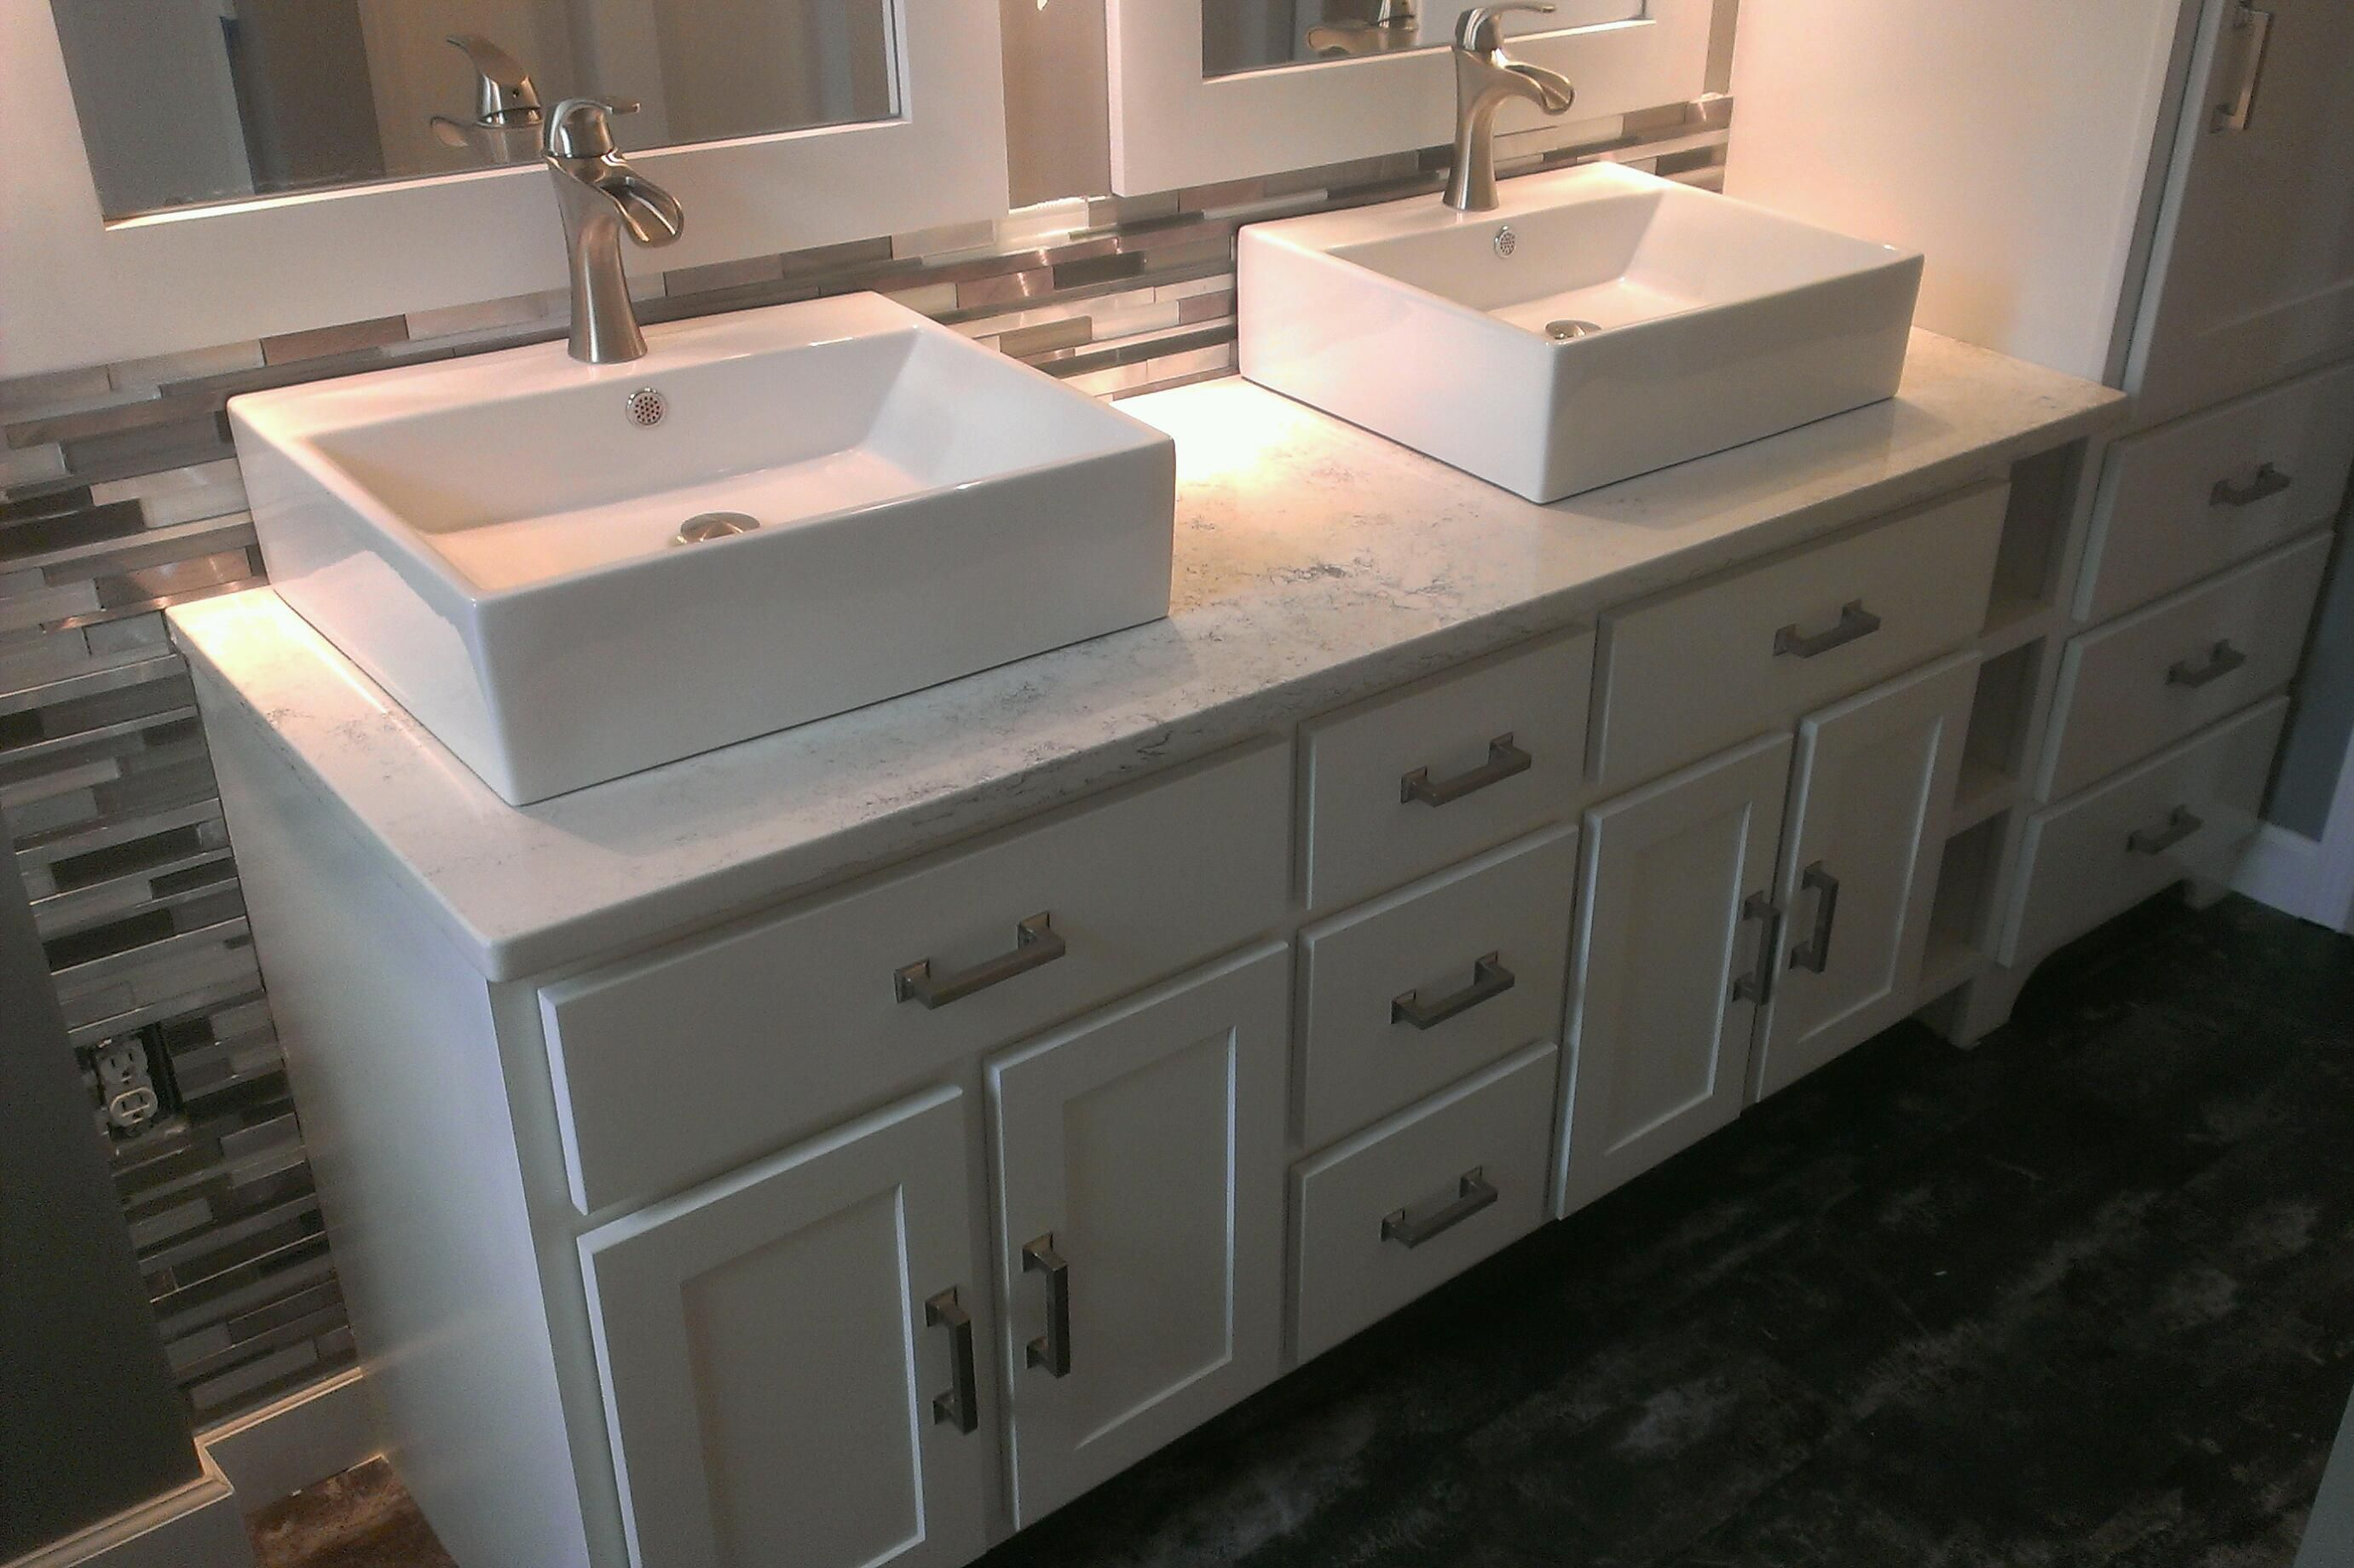 Hickory Hardware Studio Pulls On A Vanity With Raised Double Sinks.